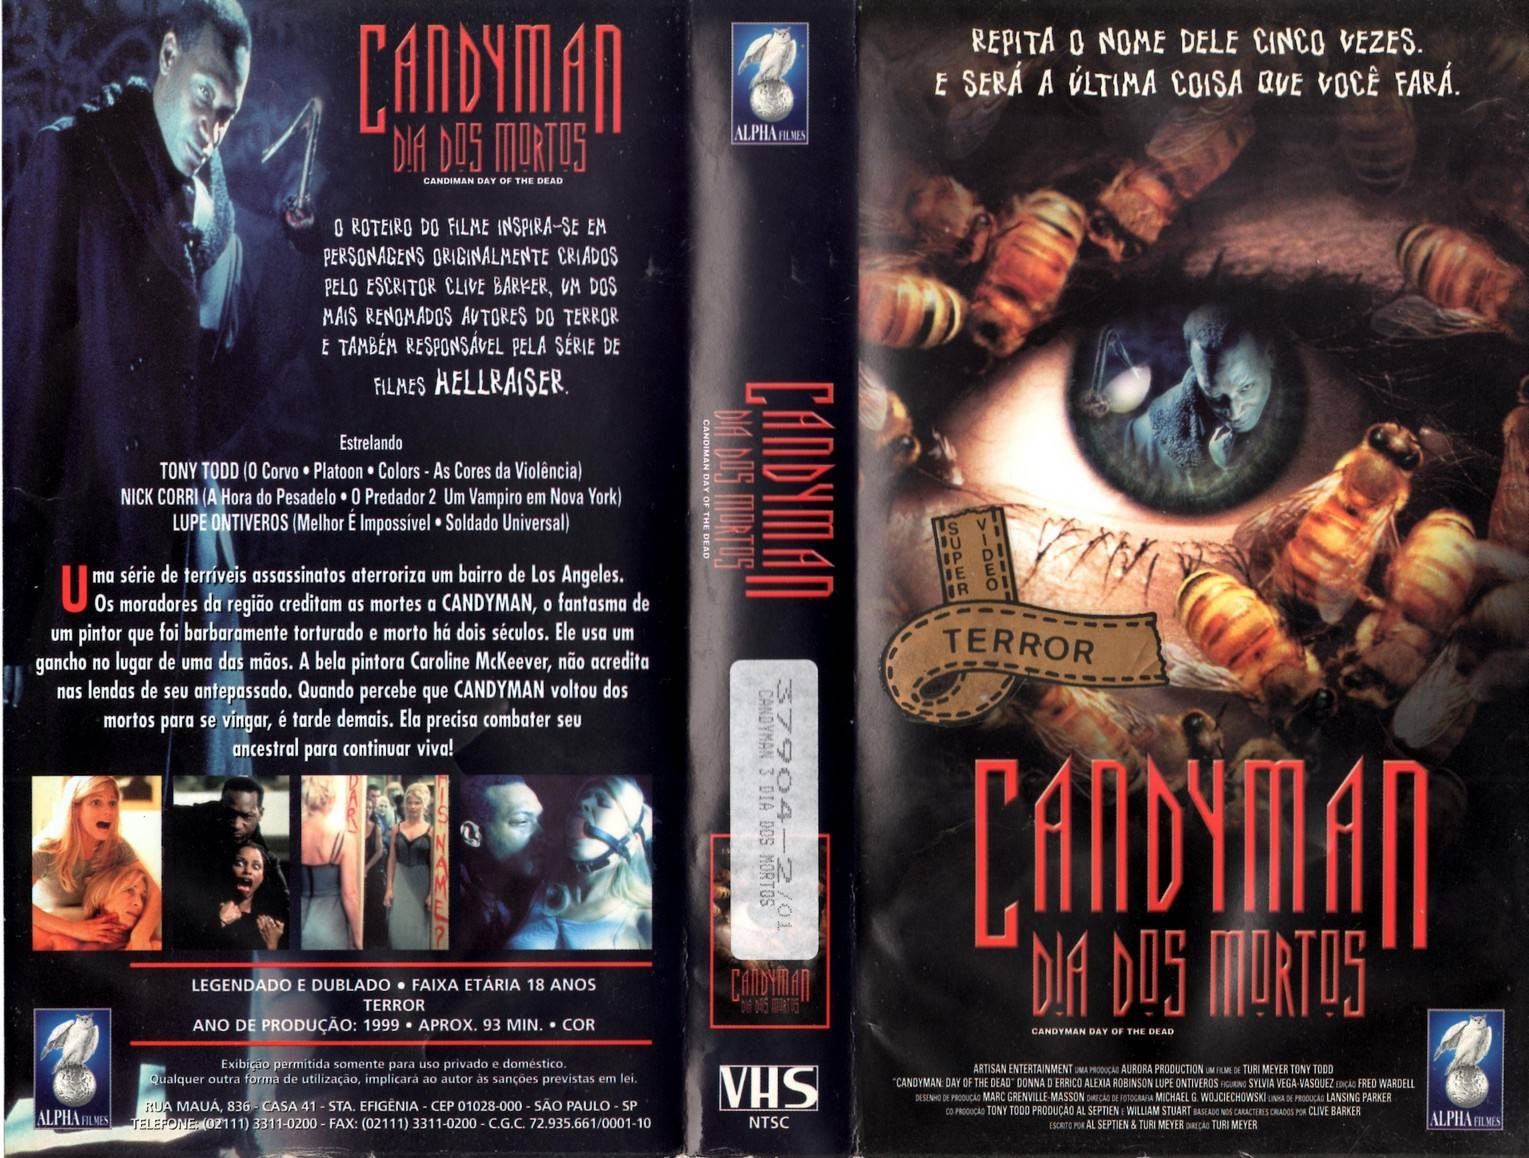 Candyman: Day of the Dead (Vid...